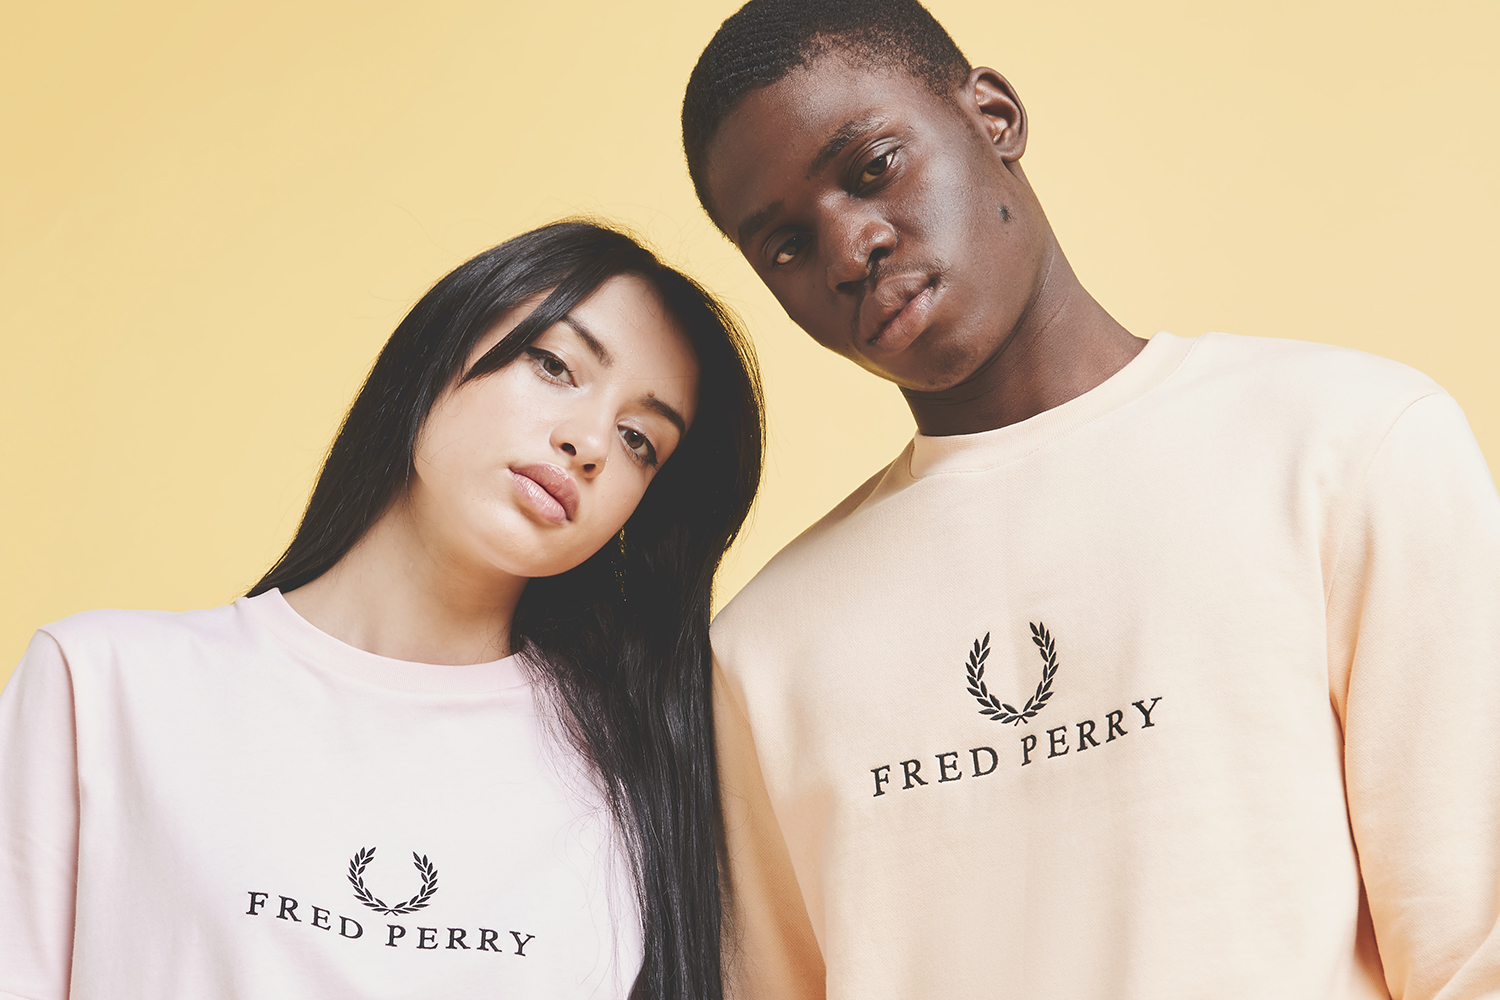 Fred Perry Summer Collection